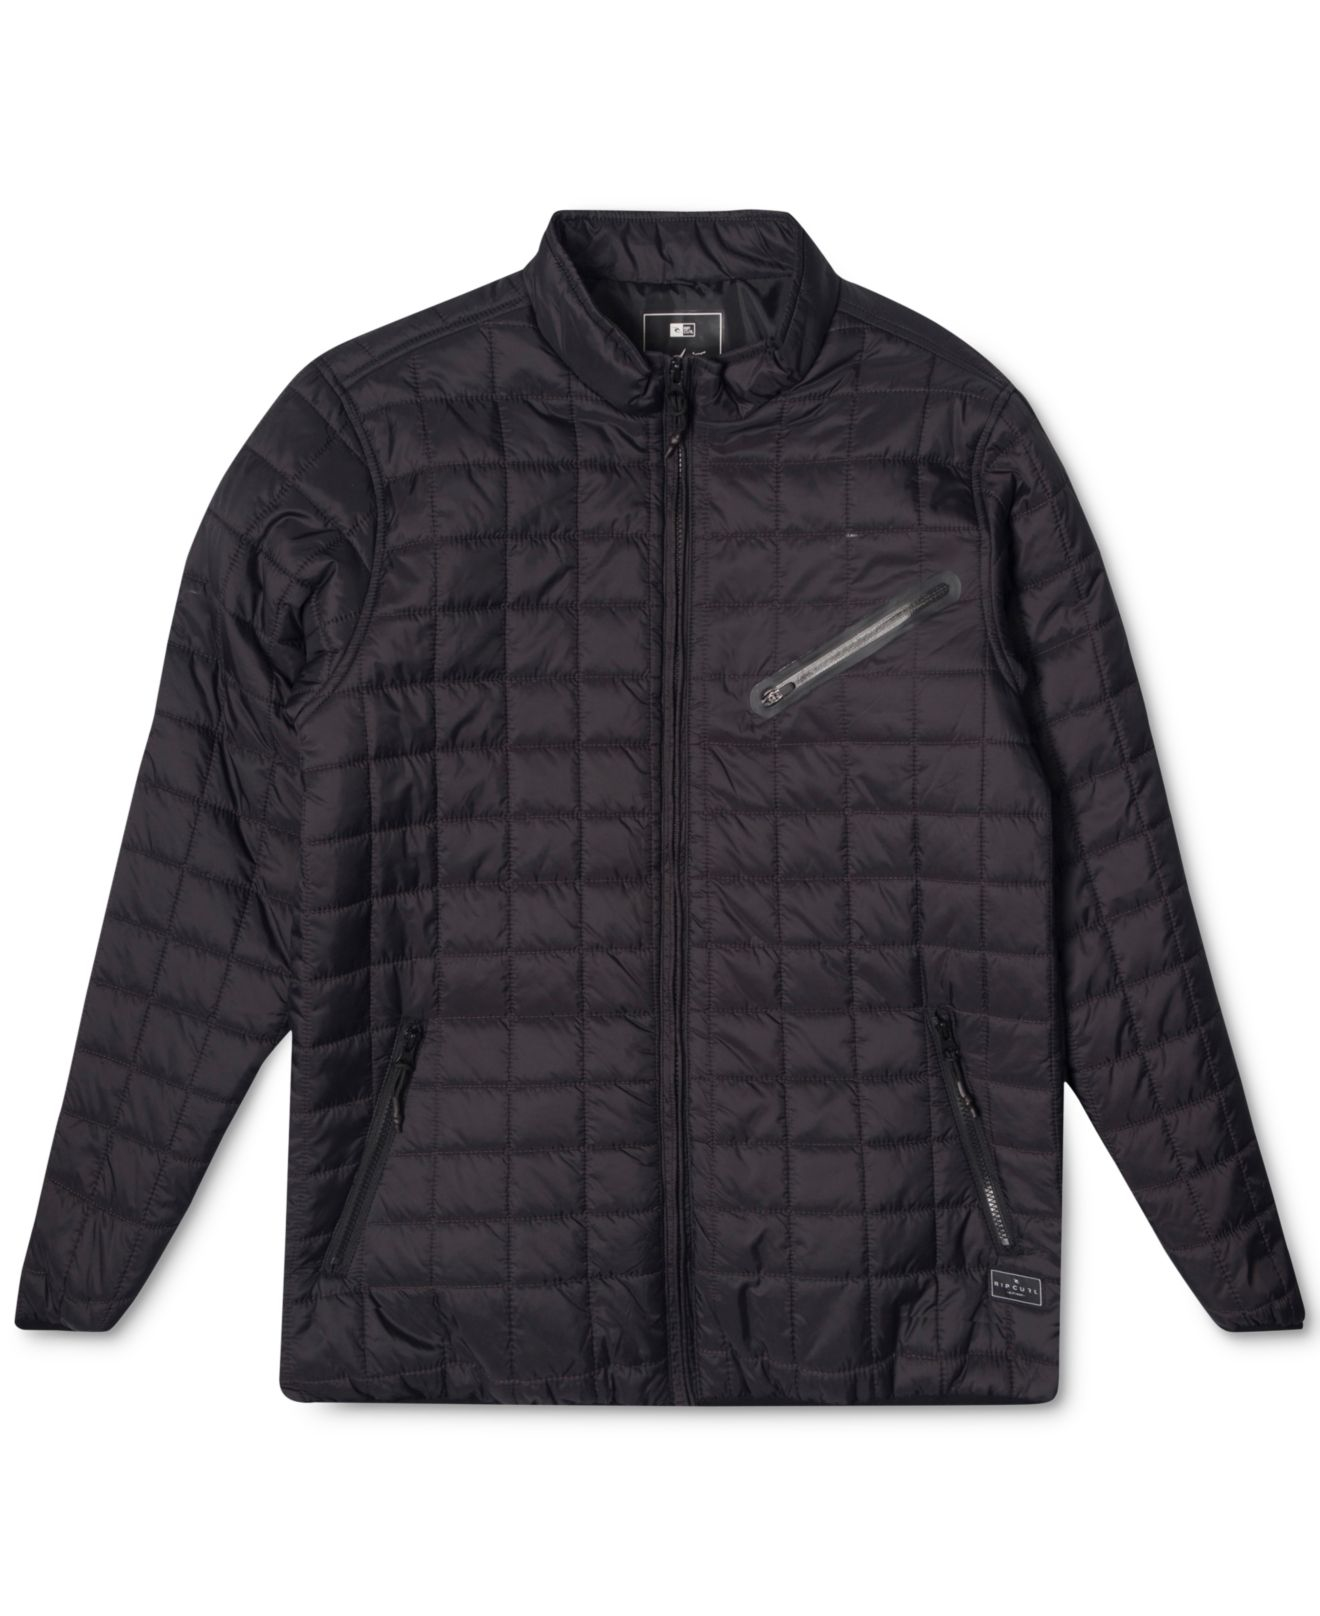 Lyst Rip Curl Men S Minnow Jacket In Black For Men